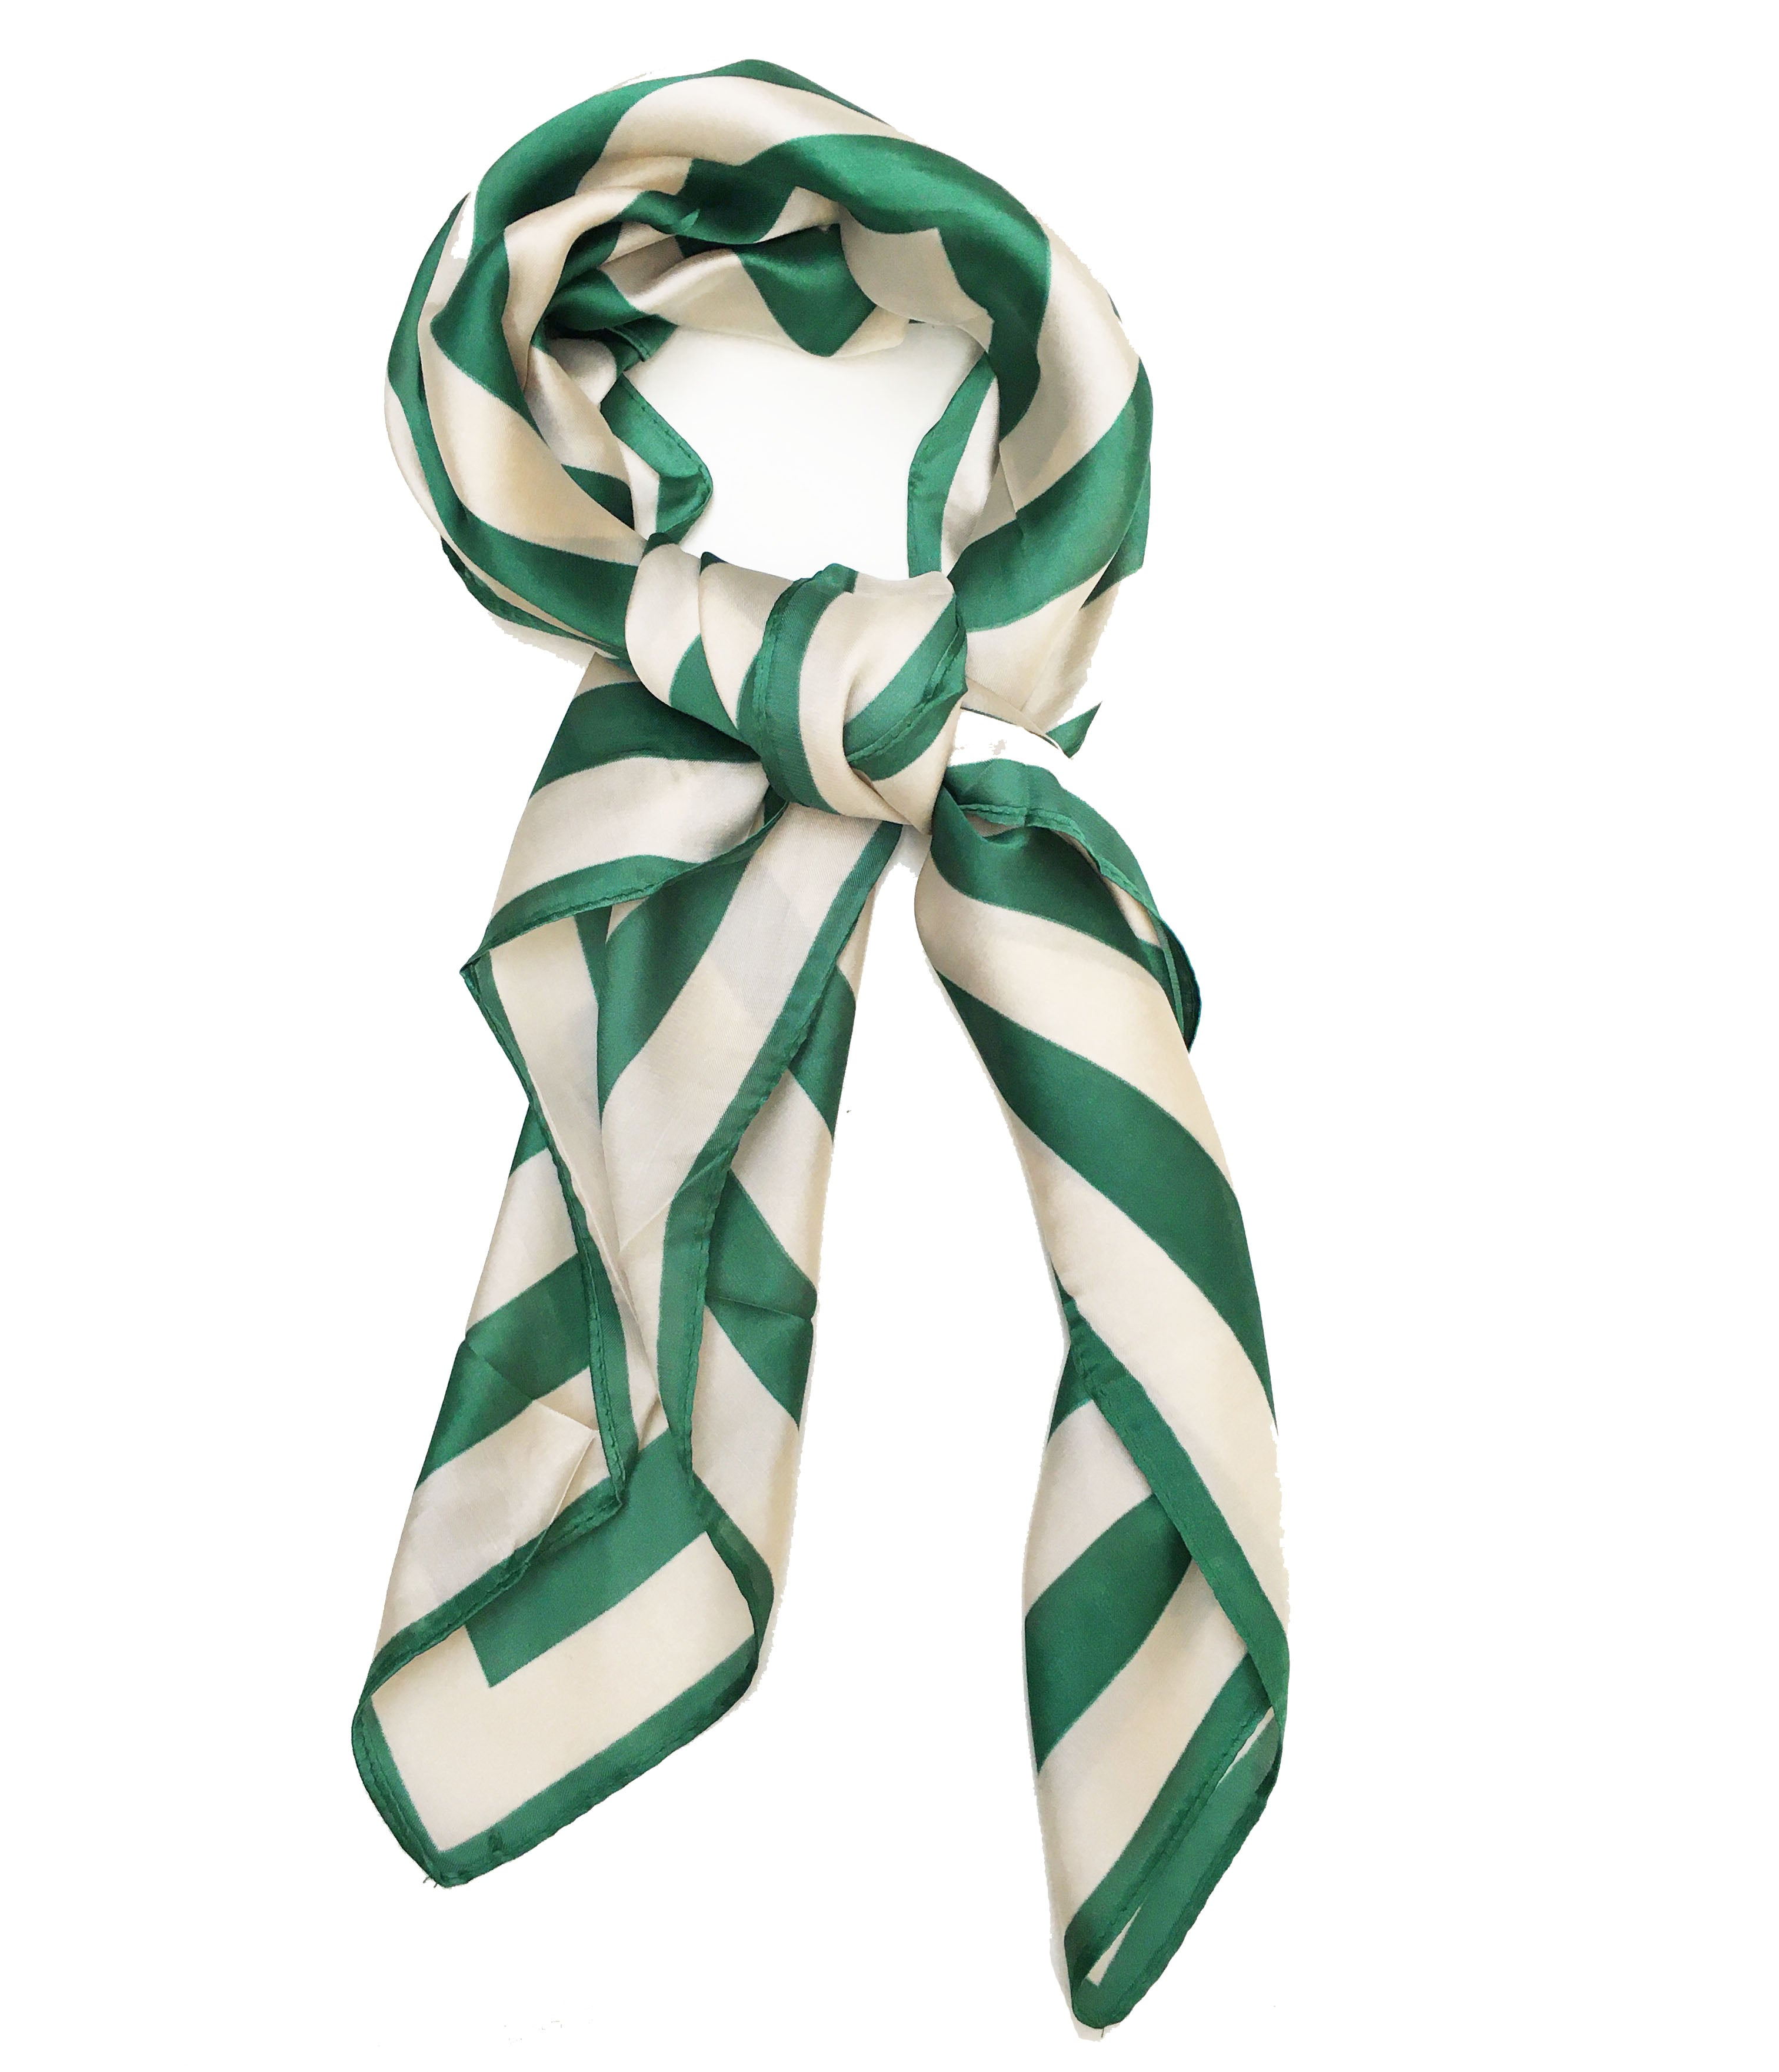 70cm x 70cm Square Scarf Green and White Stripes Scarf Thin Silky Womens Summer Spring